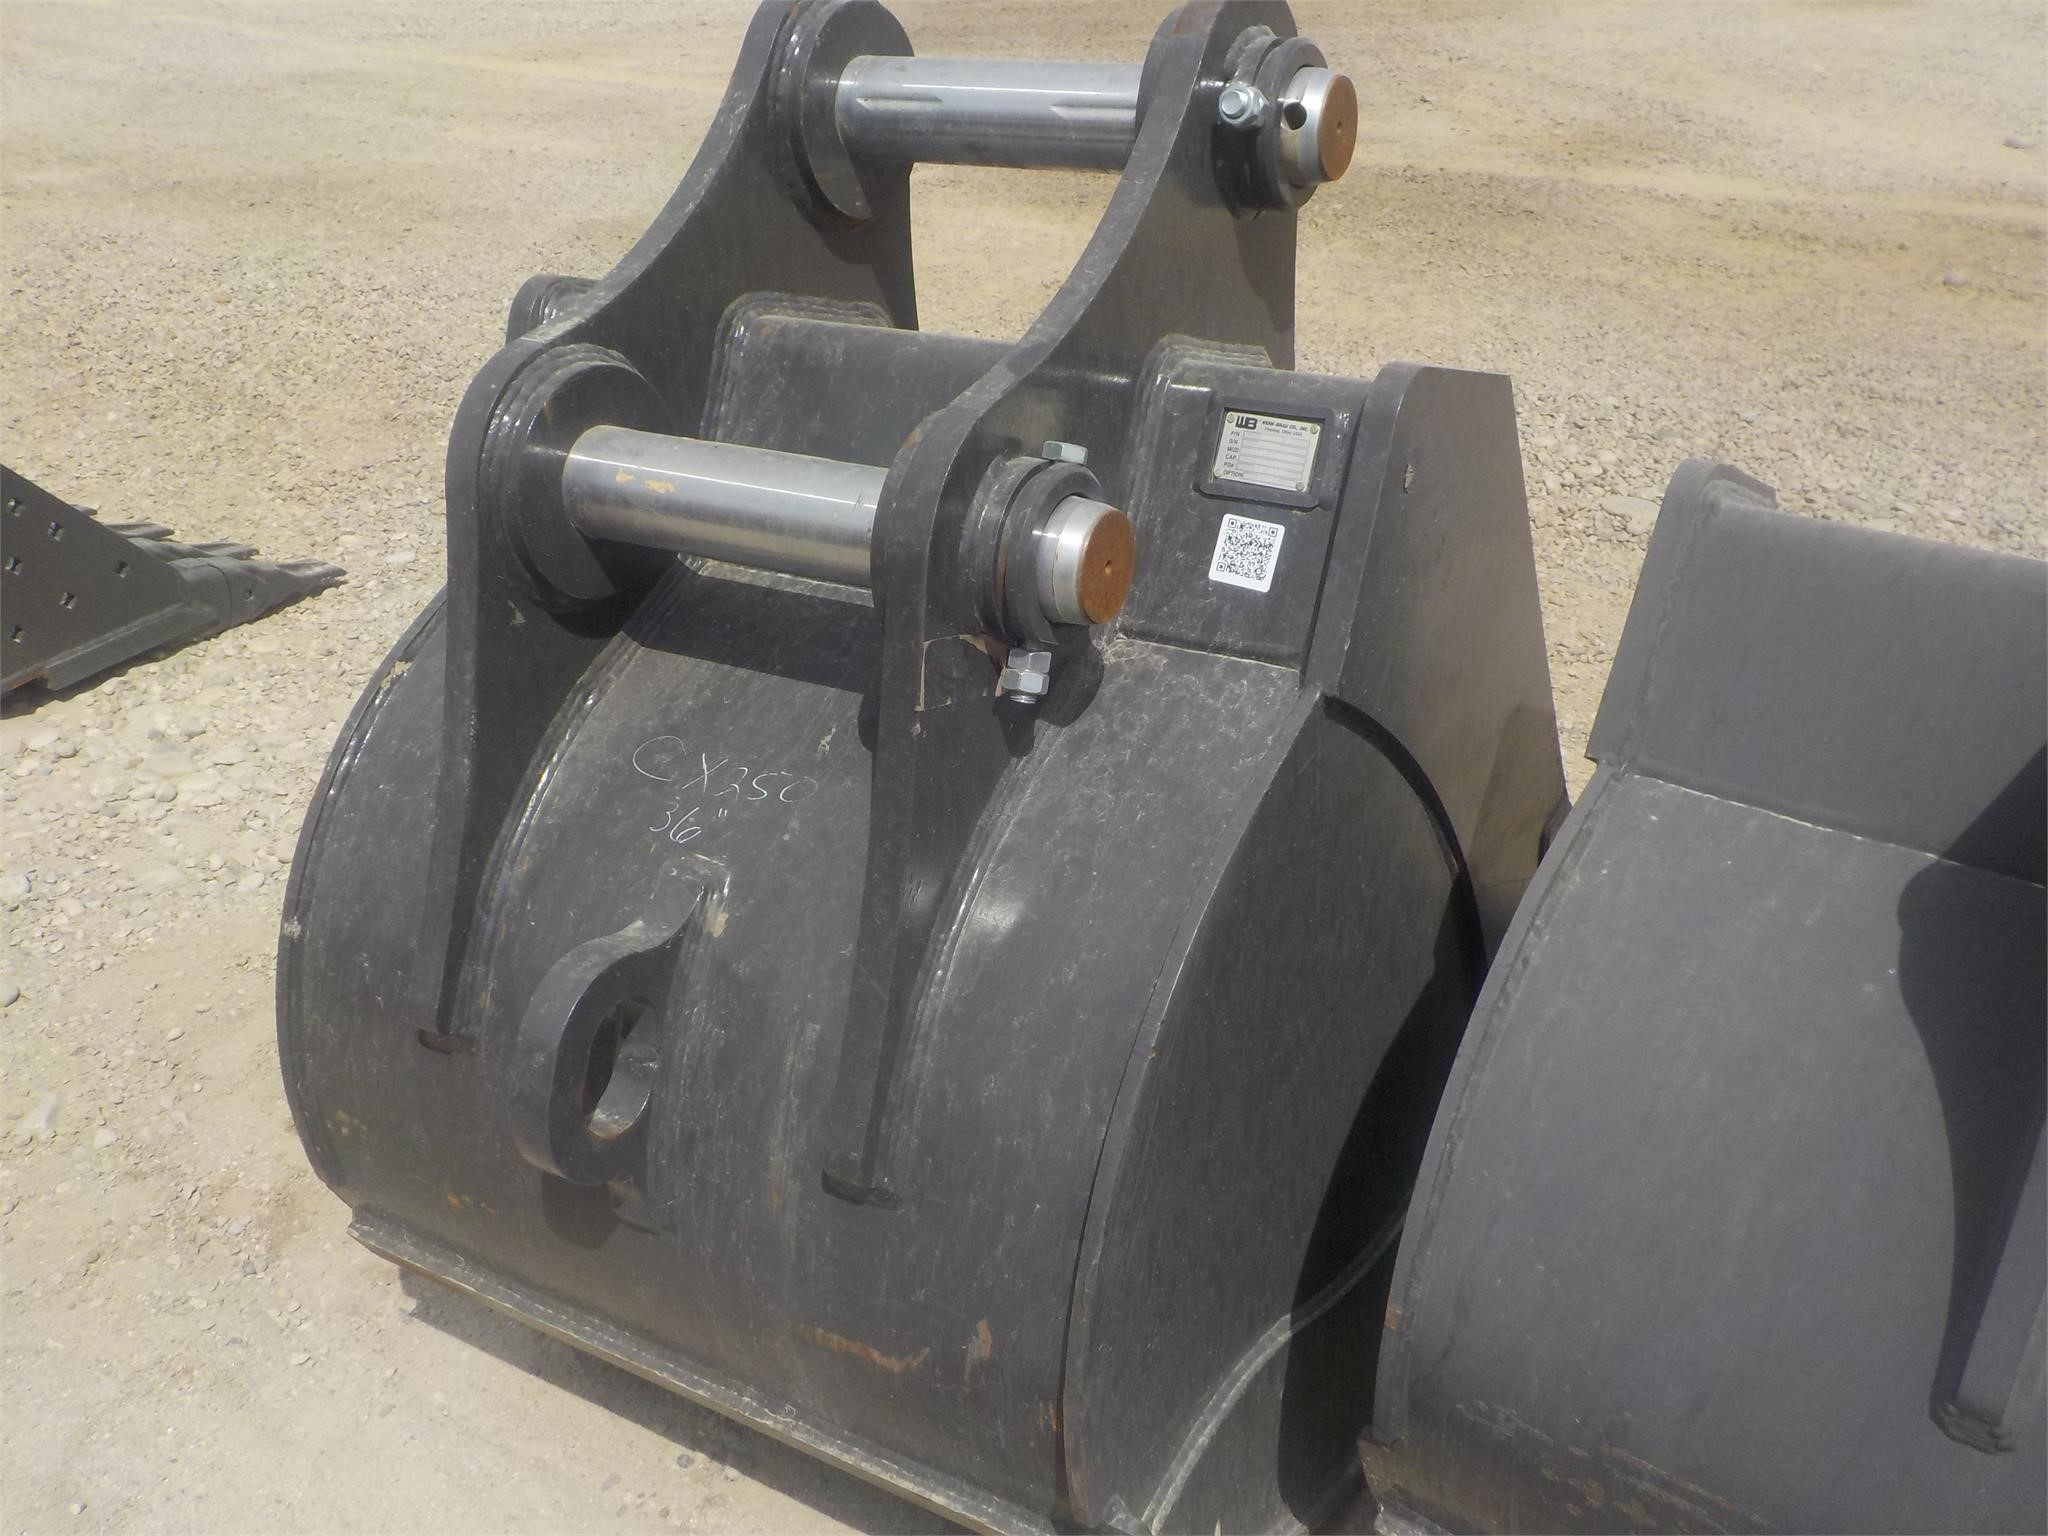 2018 Case 84404217 Loader and Skid Steer Attachment